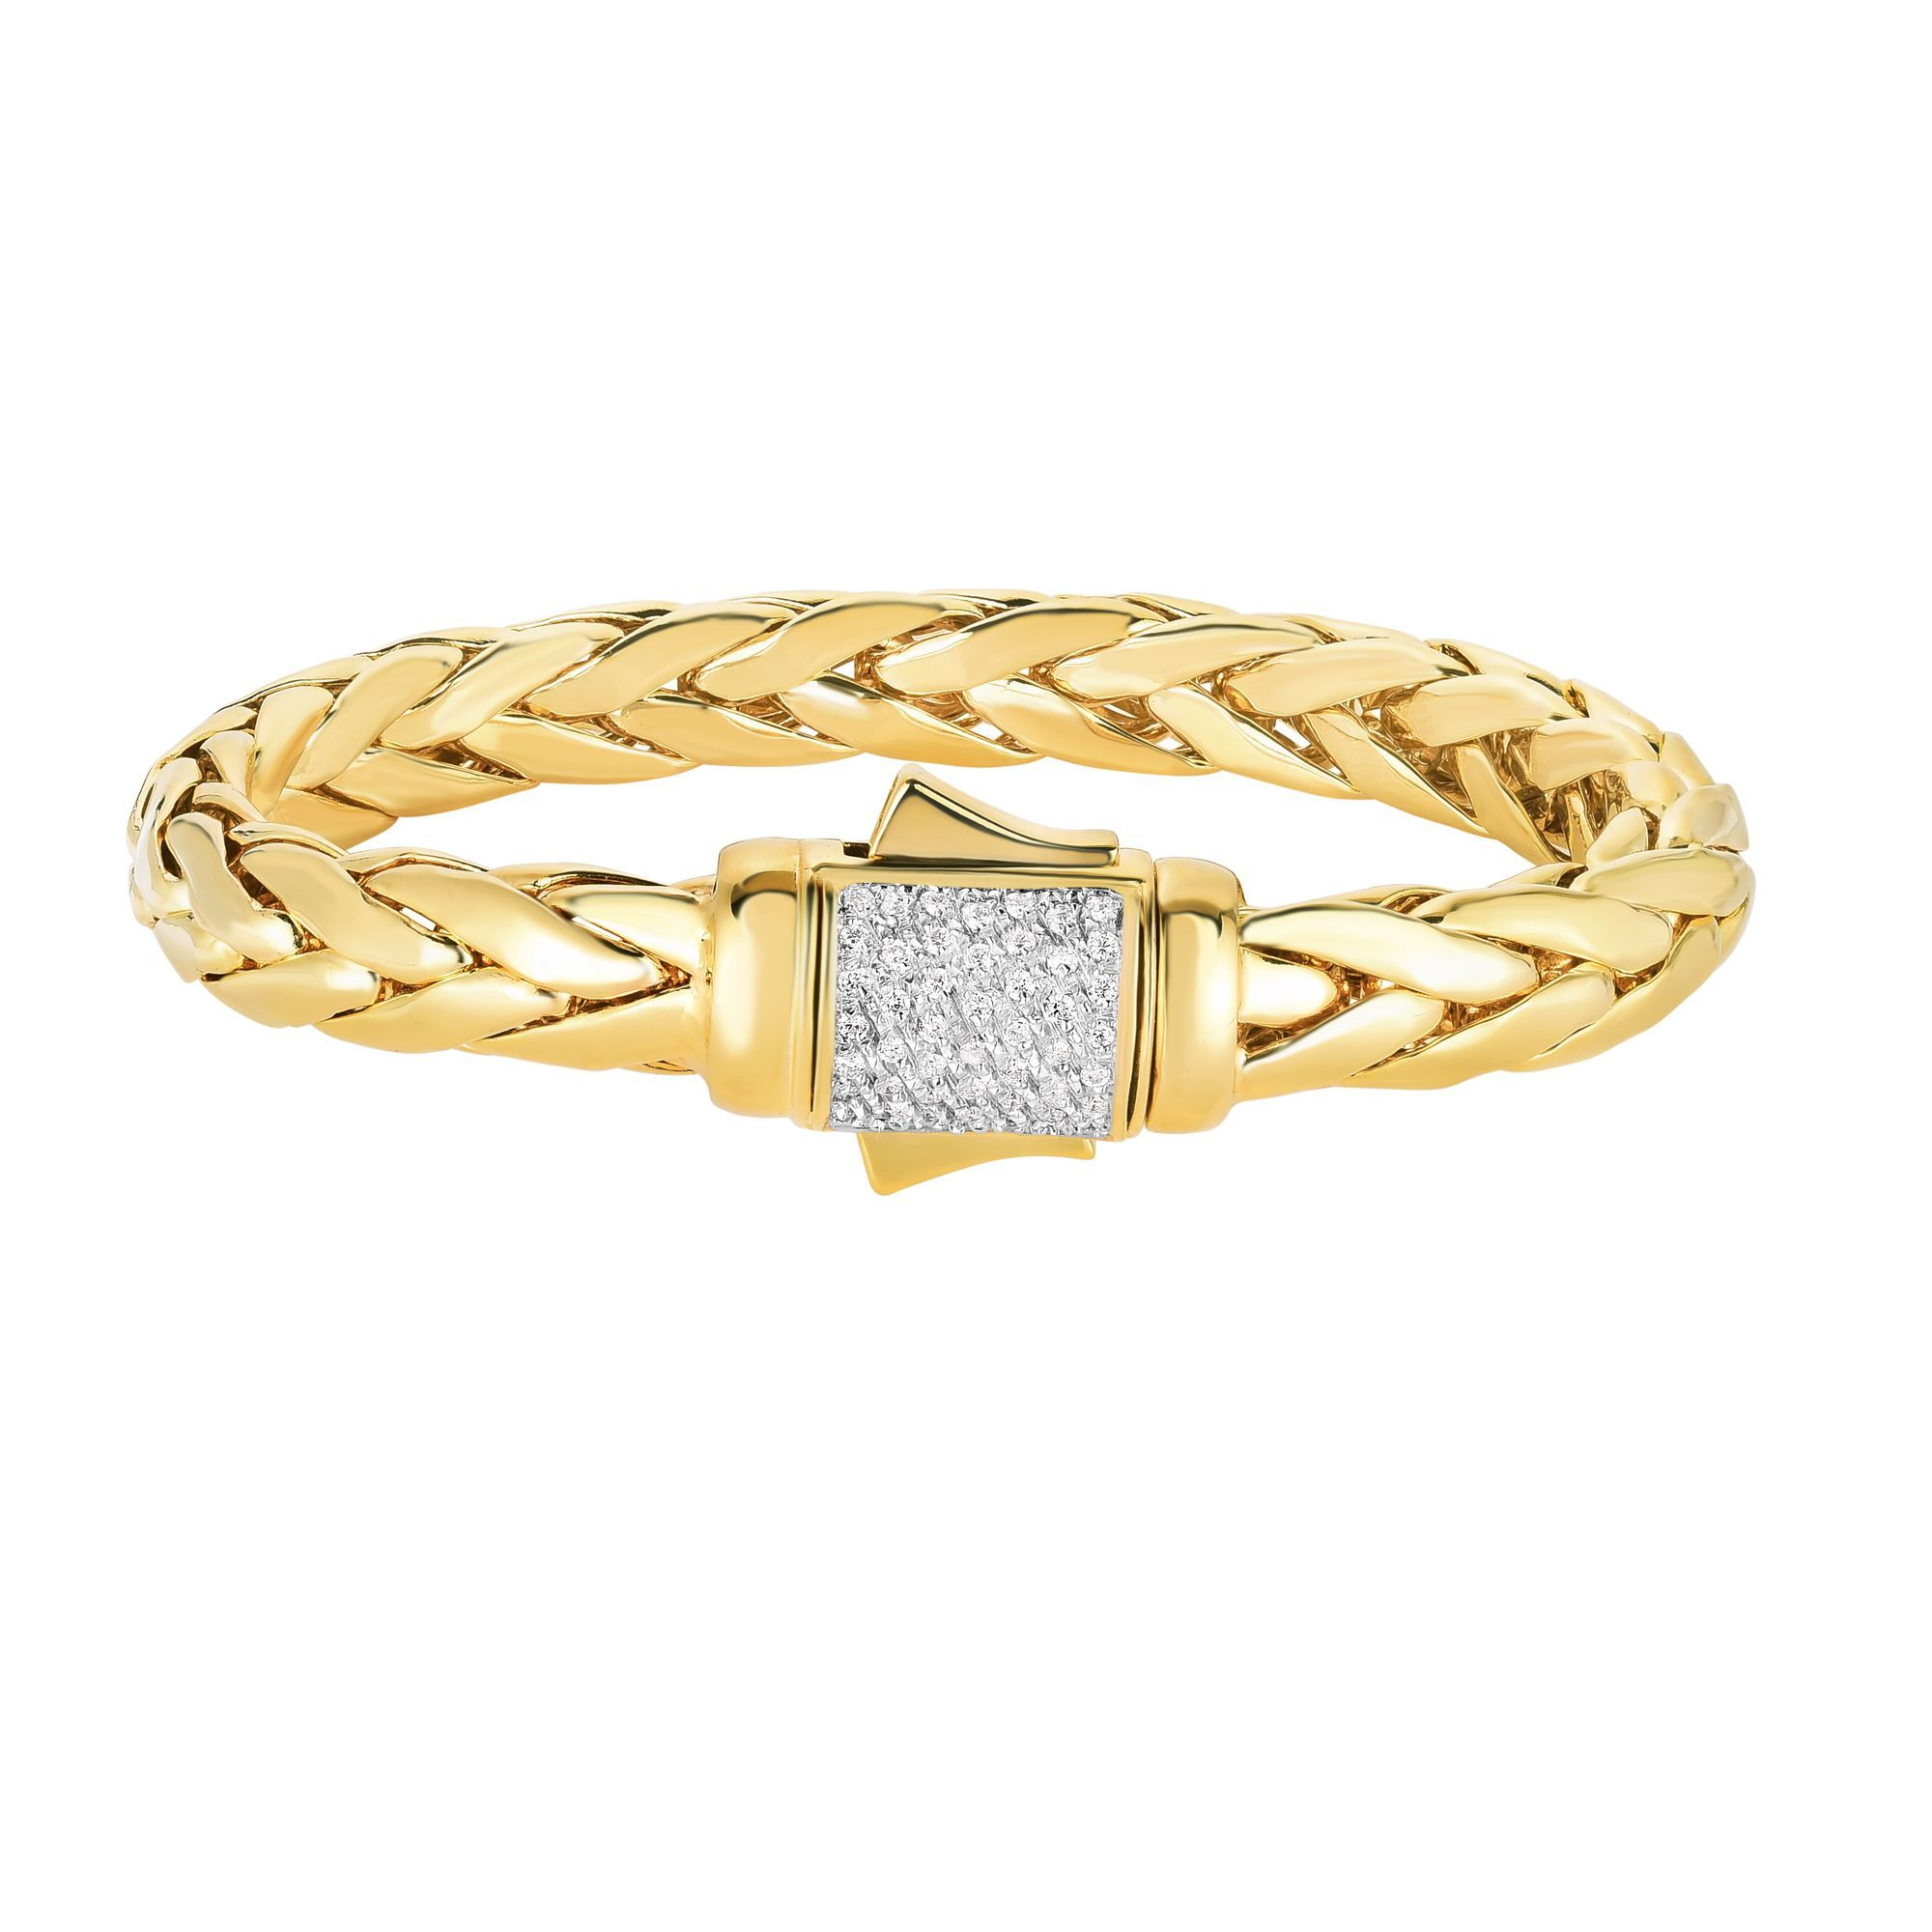 14K Yellow Gold Bracelet James Wolf Jewelers Mason, OH